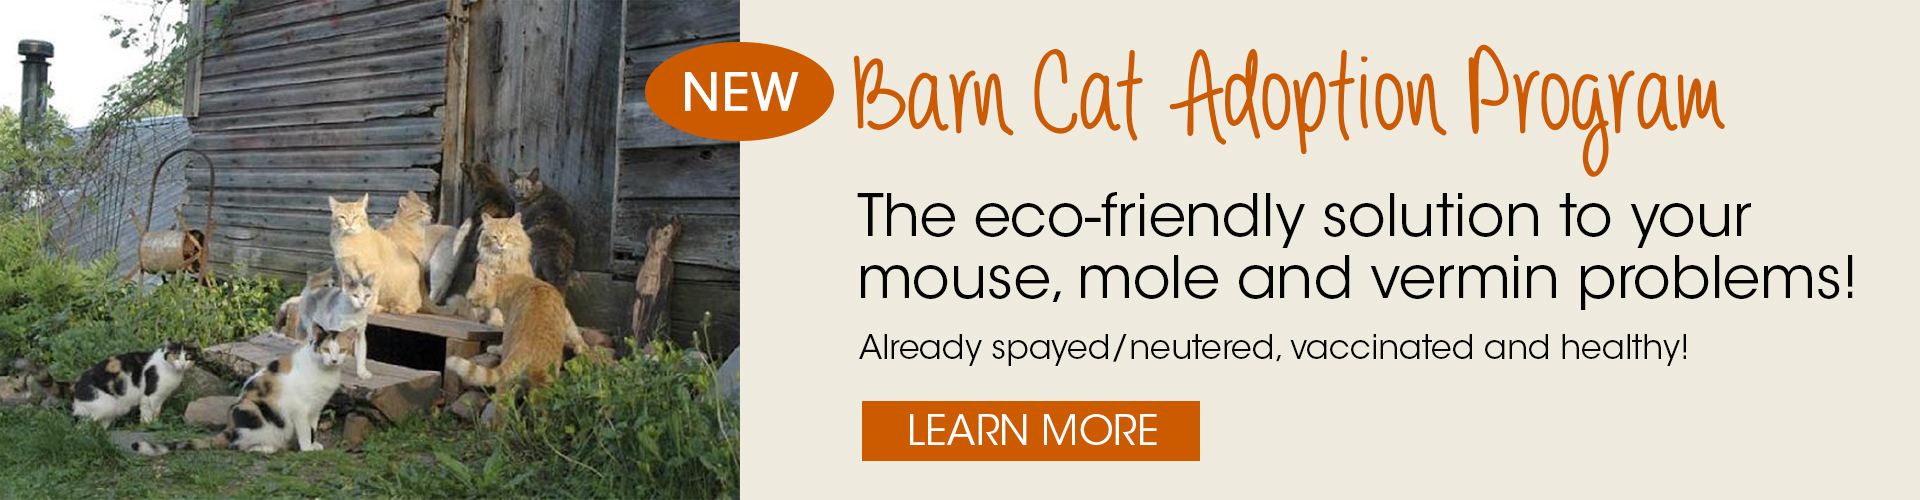 Barn Cat Adoption Program